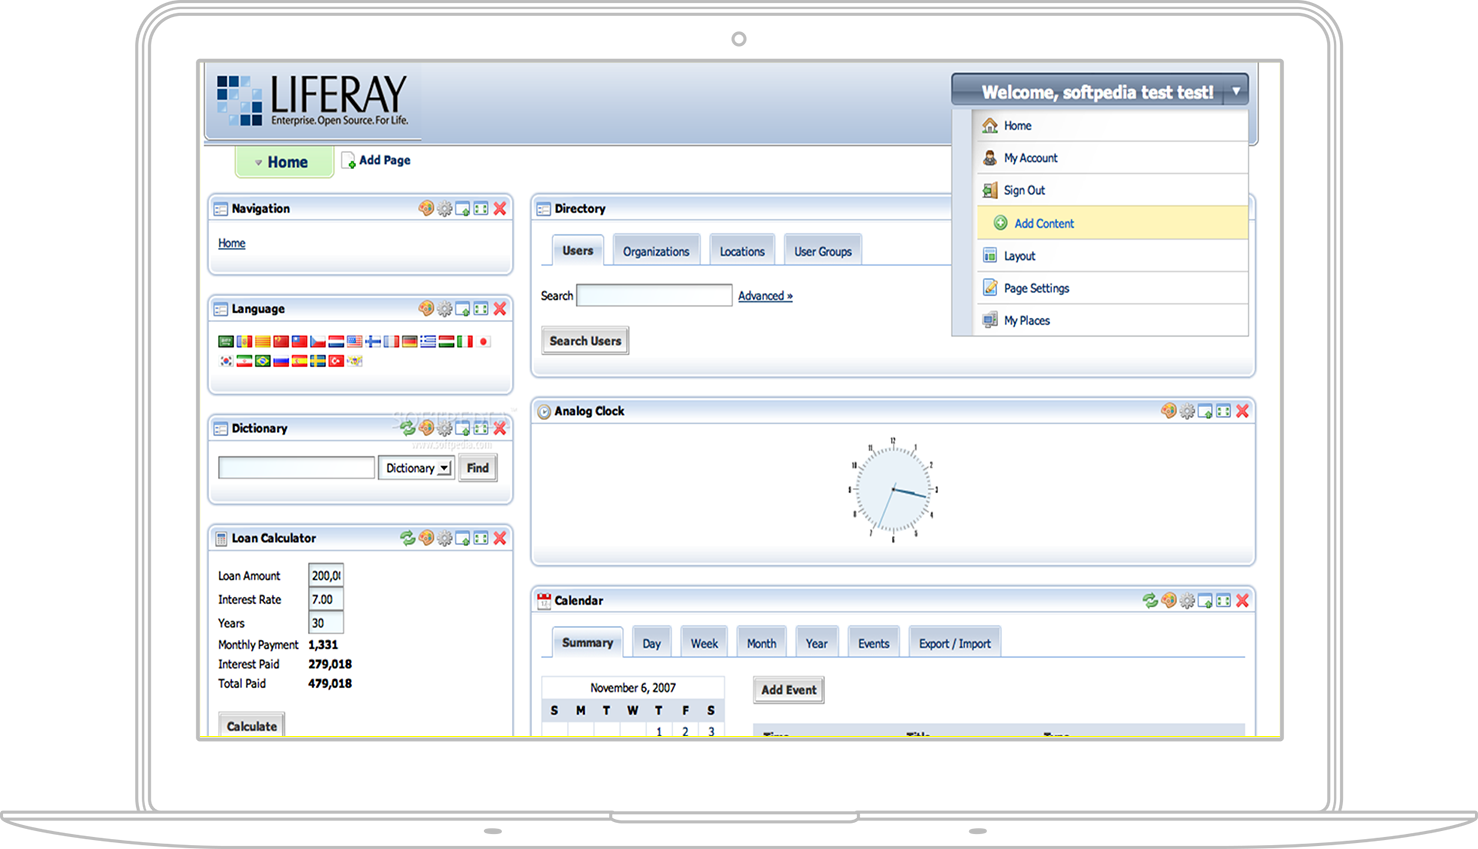 Extra | Liferay portale web open source